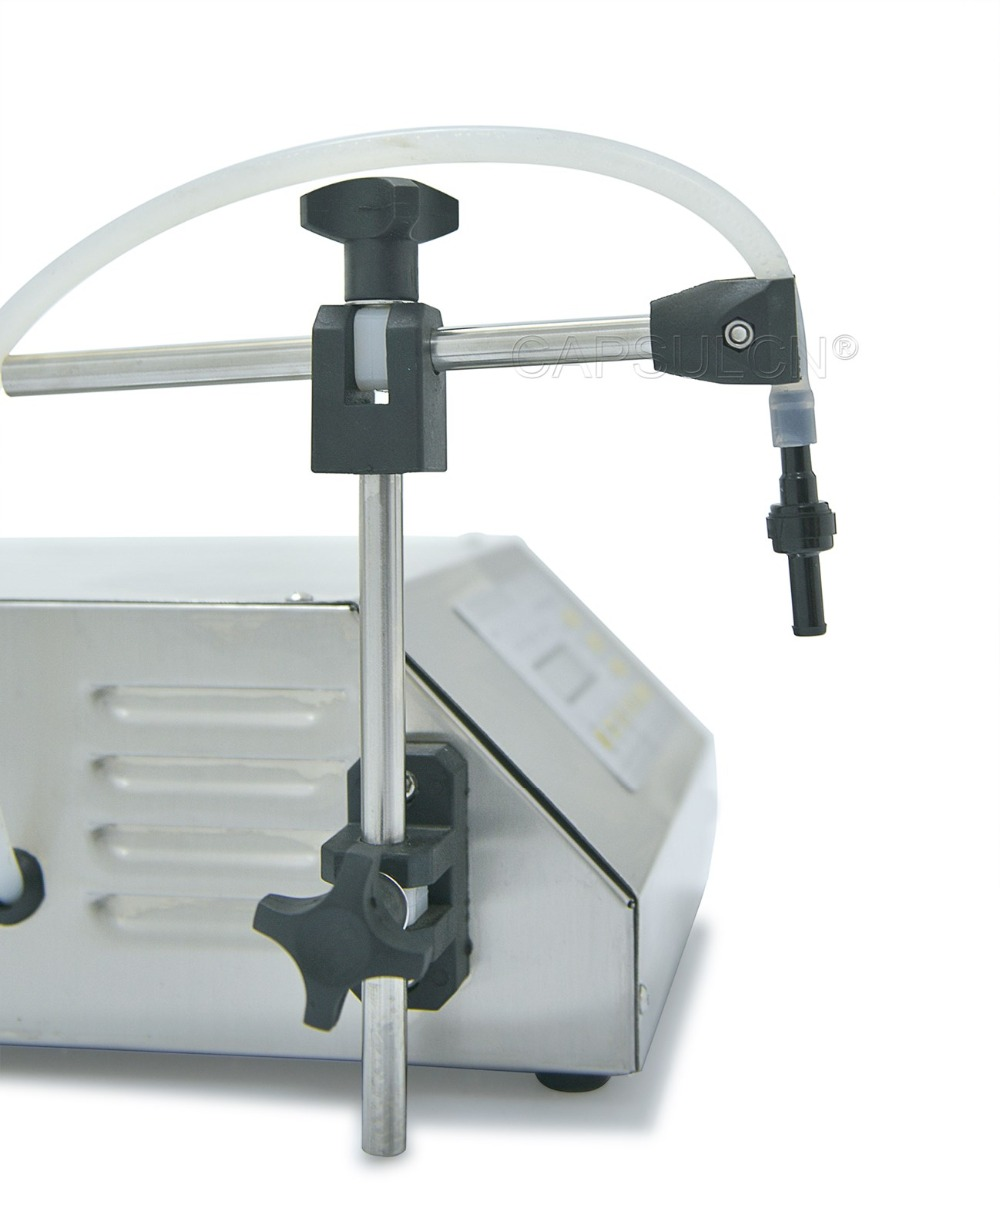 Stainless Steel Digital Advanced Liquid Filling Machine Effectively Control Filling Quantity 220V or 110V